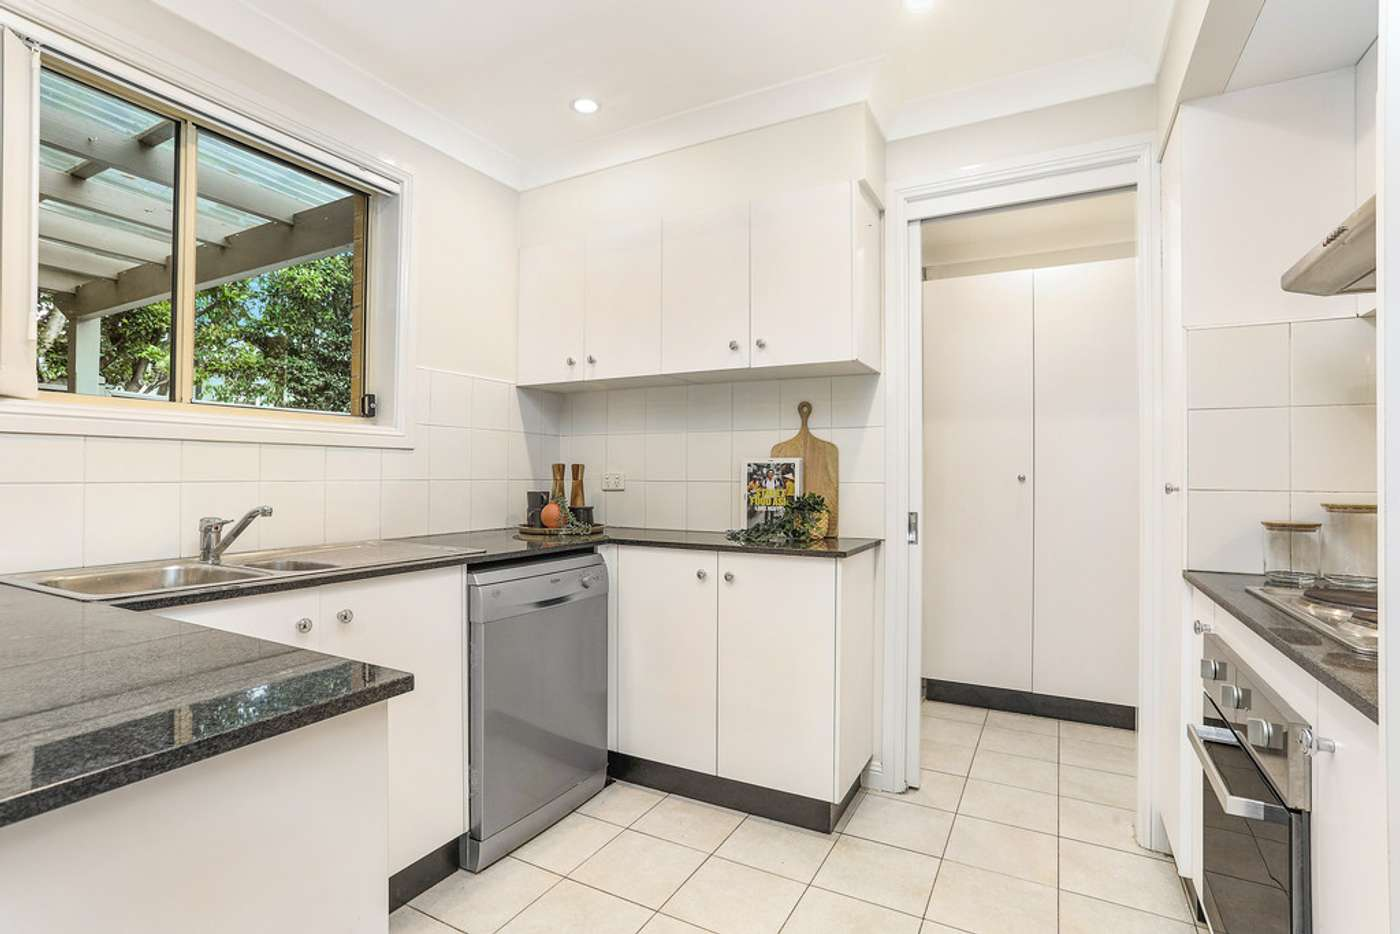 Fifth view of Homely townhouse listing, 1/39-41 Macauley Street, Leichhardt NSW 2040